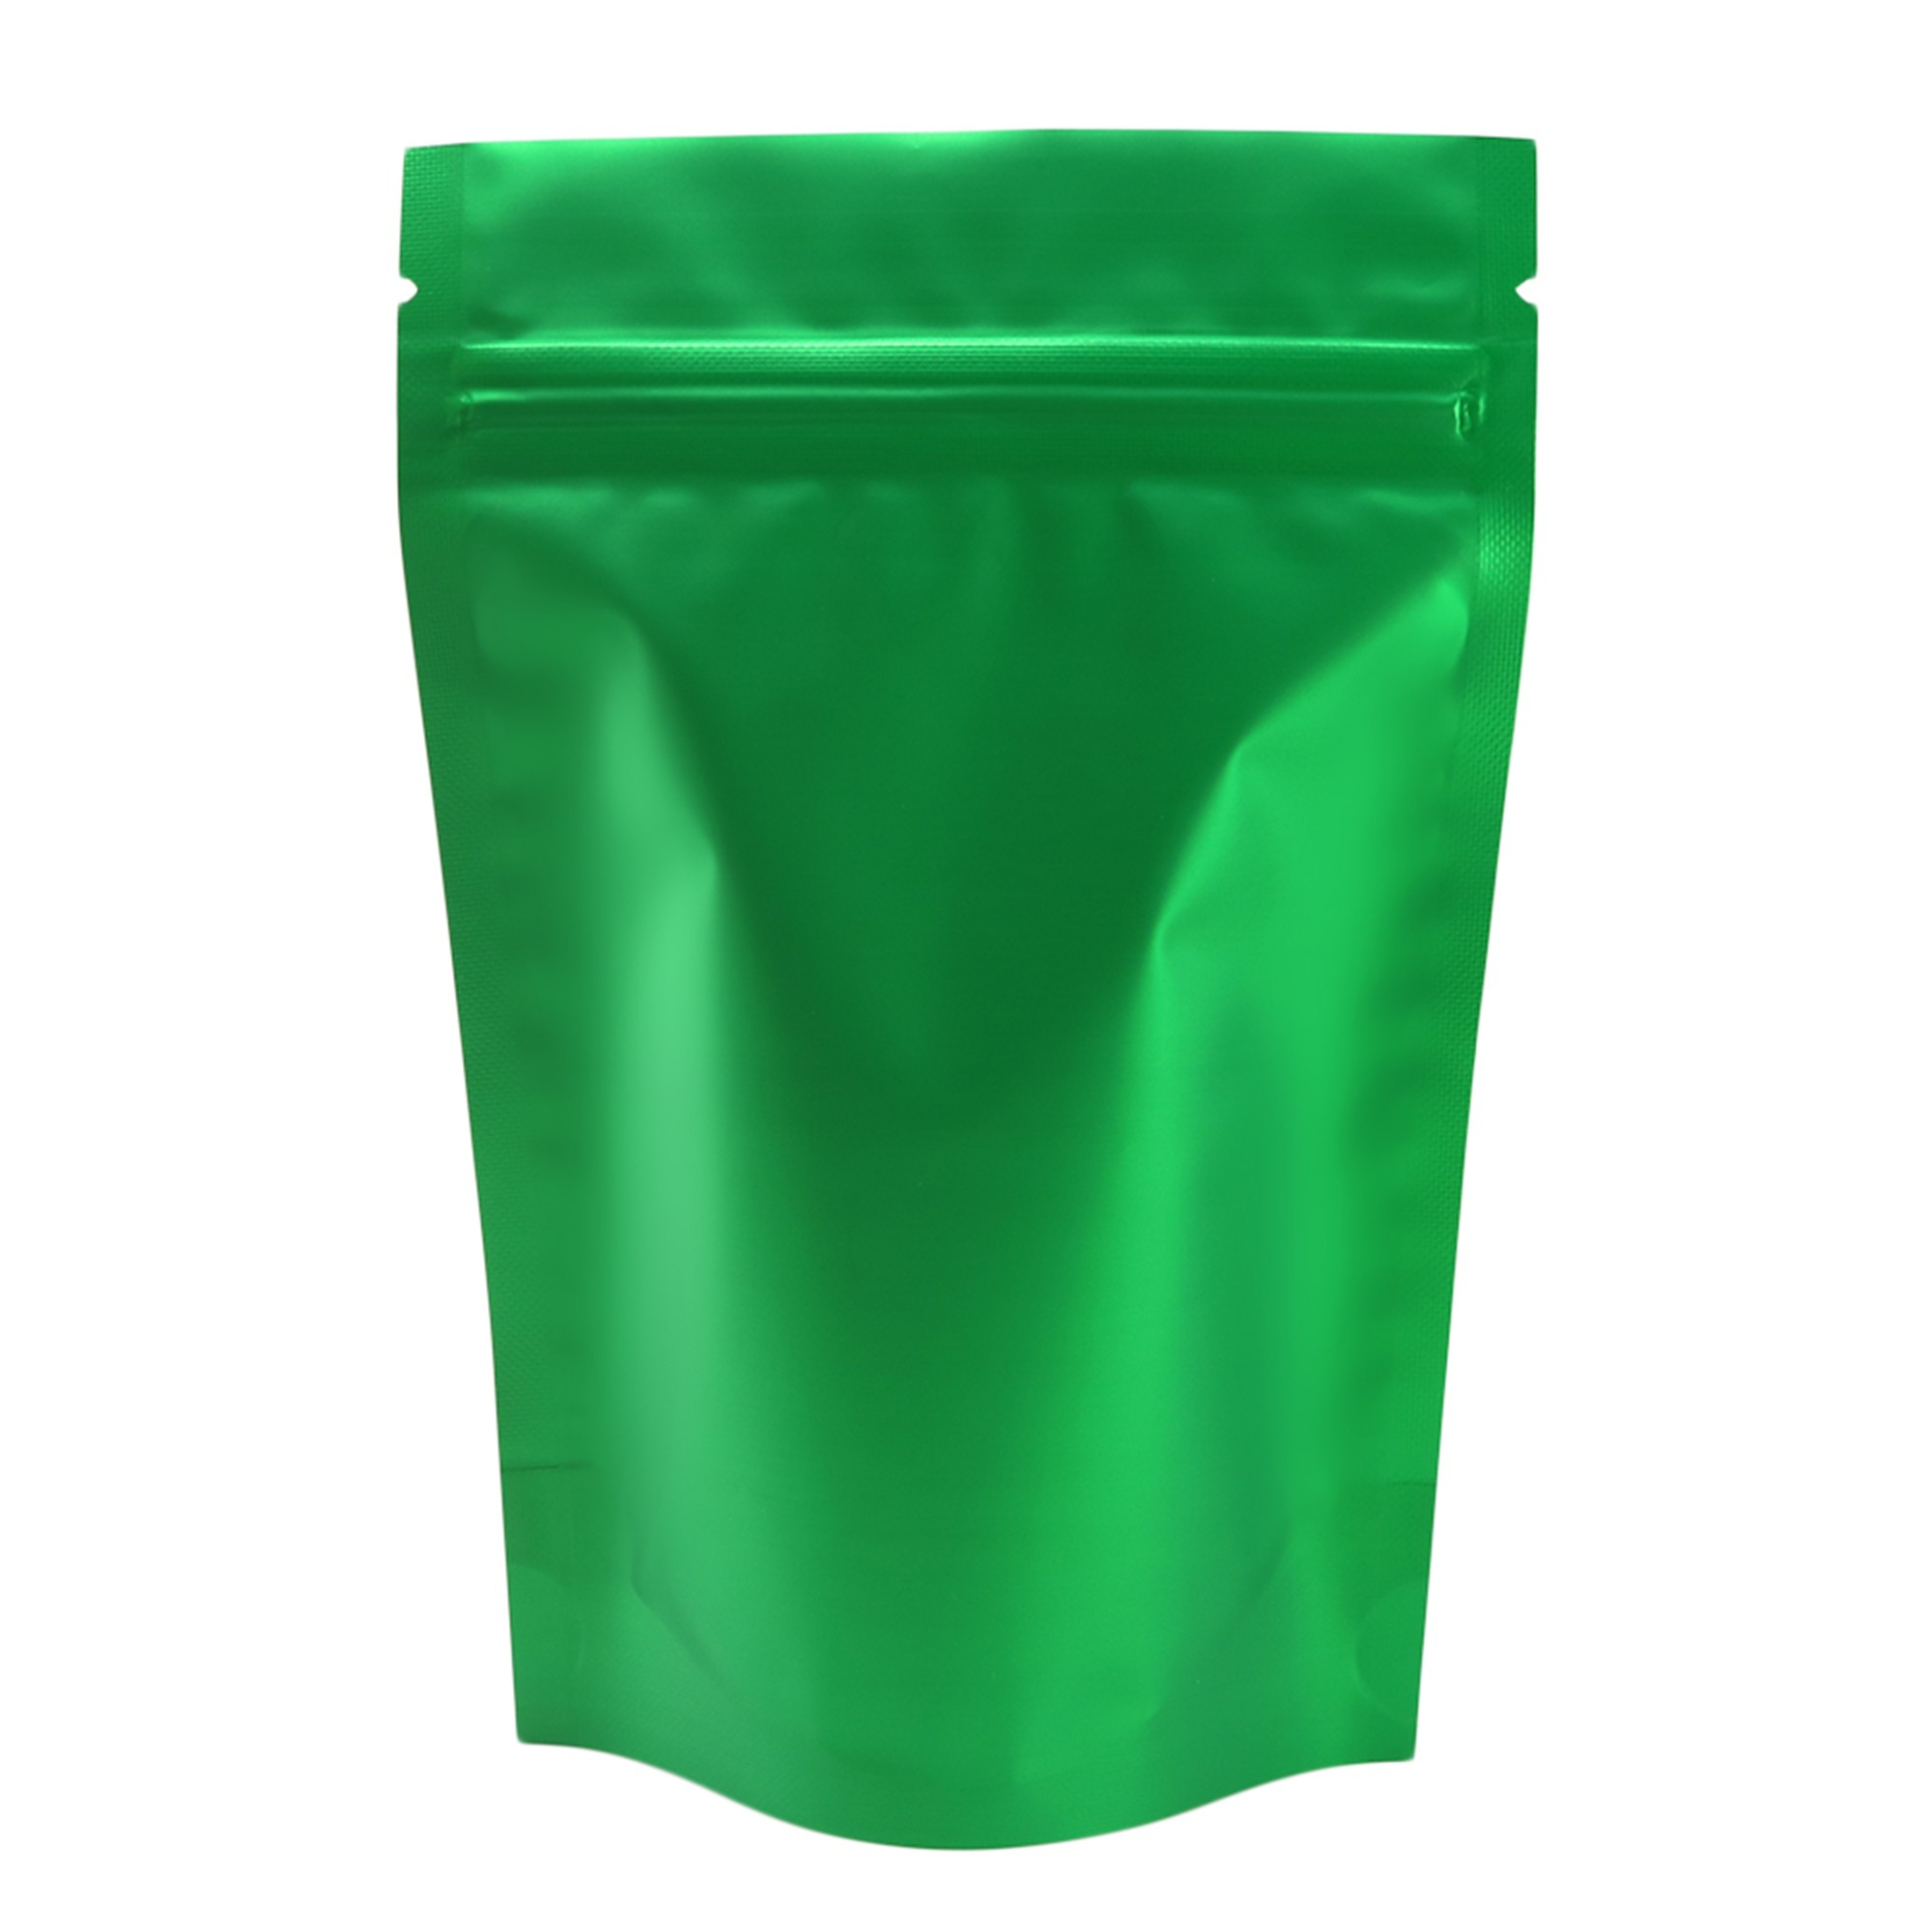 Green Metallic Foil Stand-Up Ziplock Bags 12 cm x 18 cm [4.7 inches x 7.1 inches] (500 Bags/Lot)